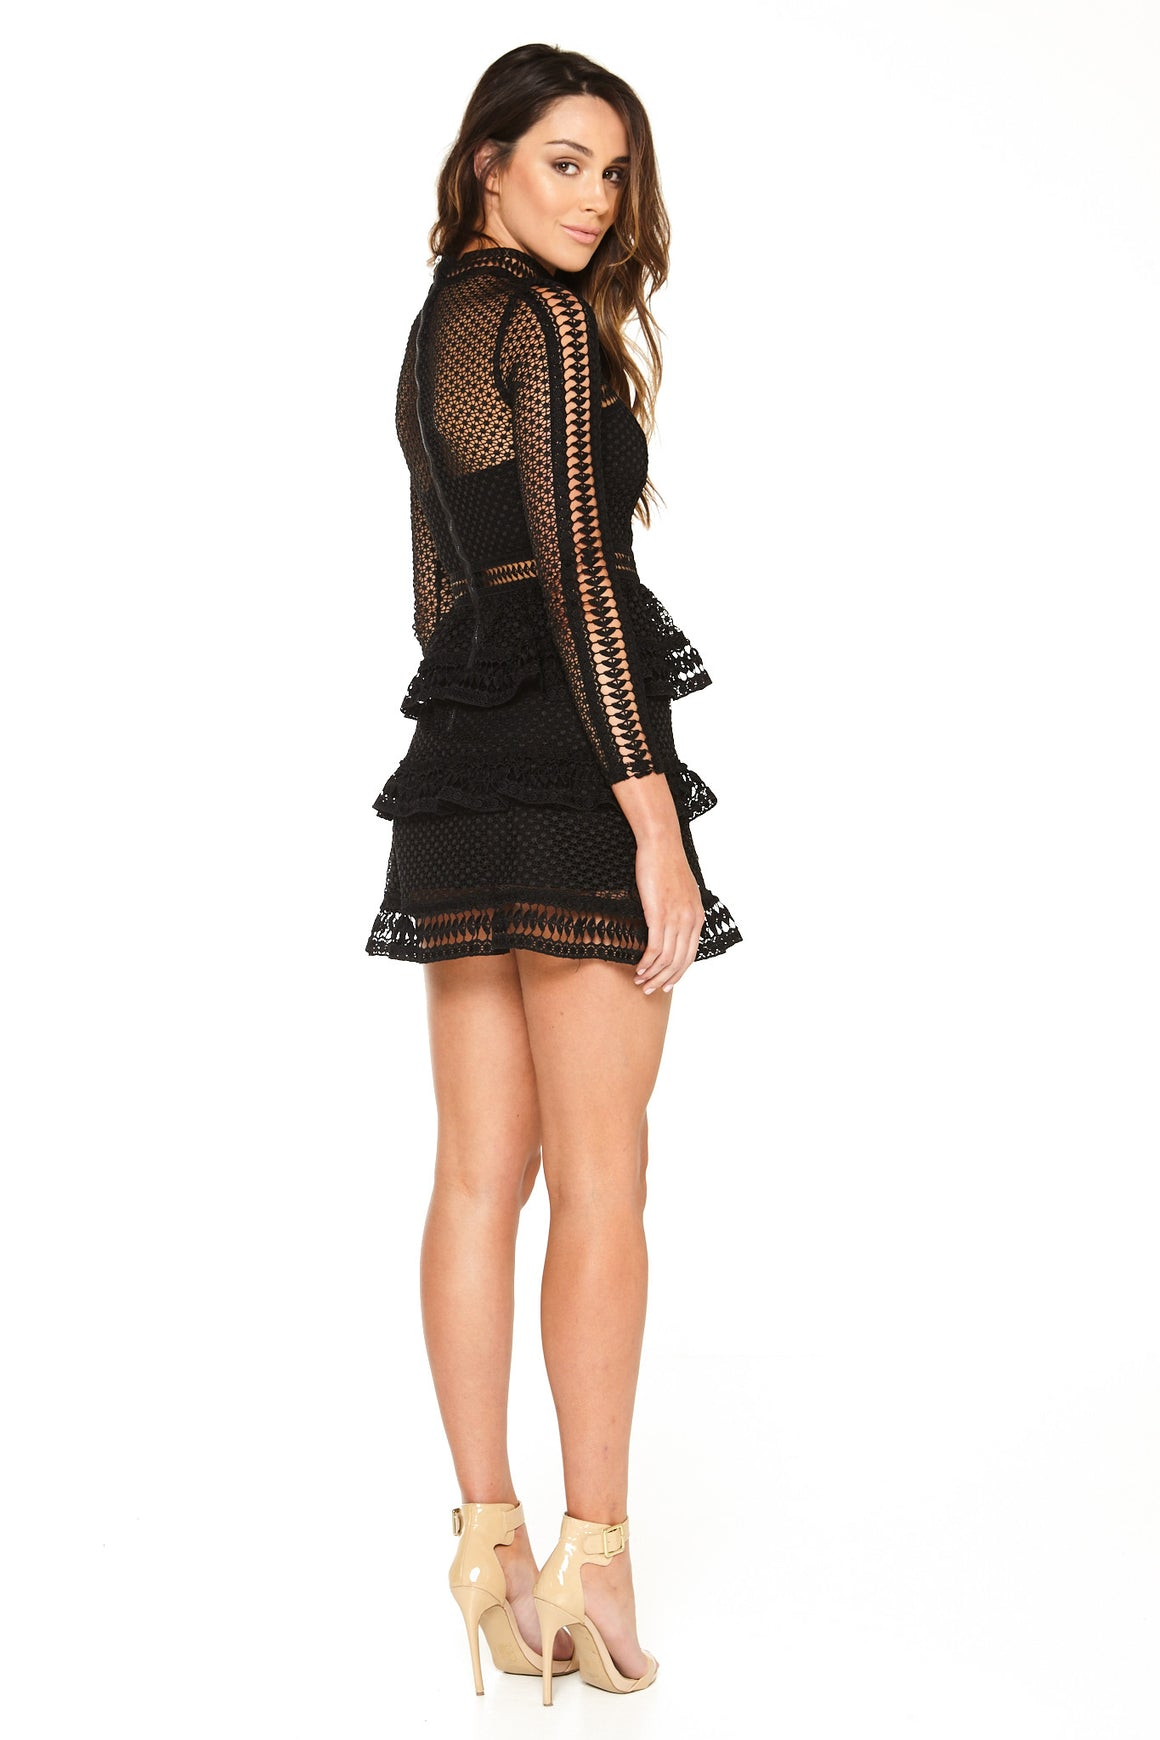 Sienna Lace Peplum Dress - Black [SAMPLE SALE]